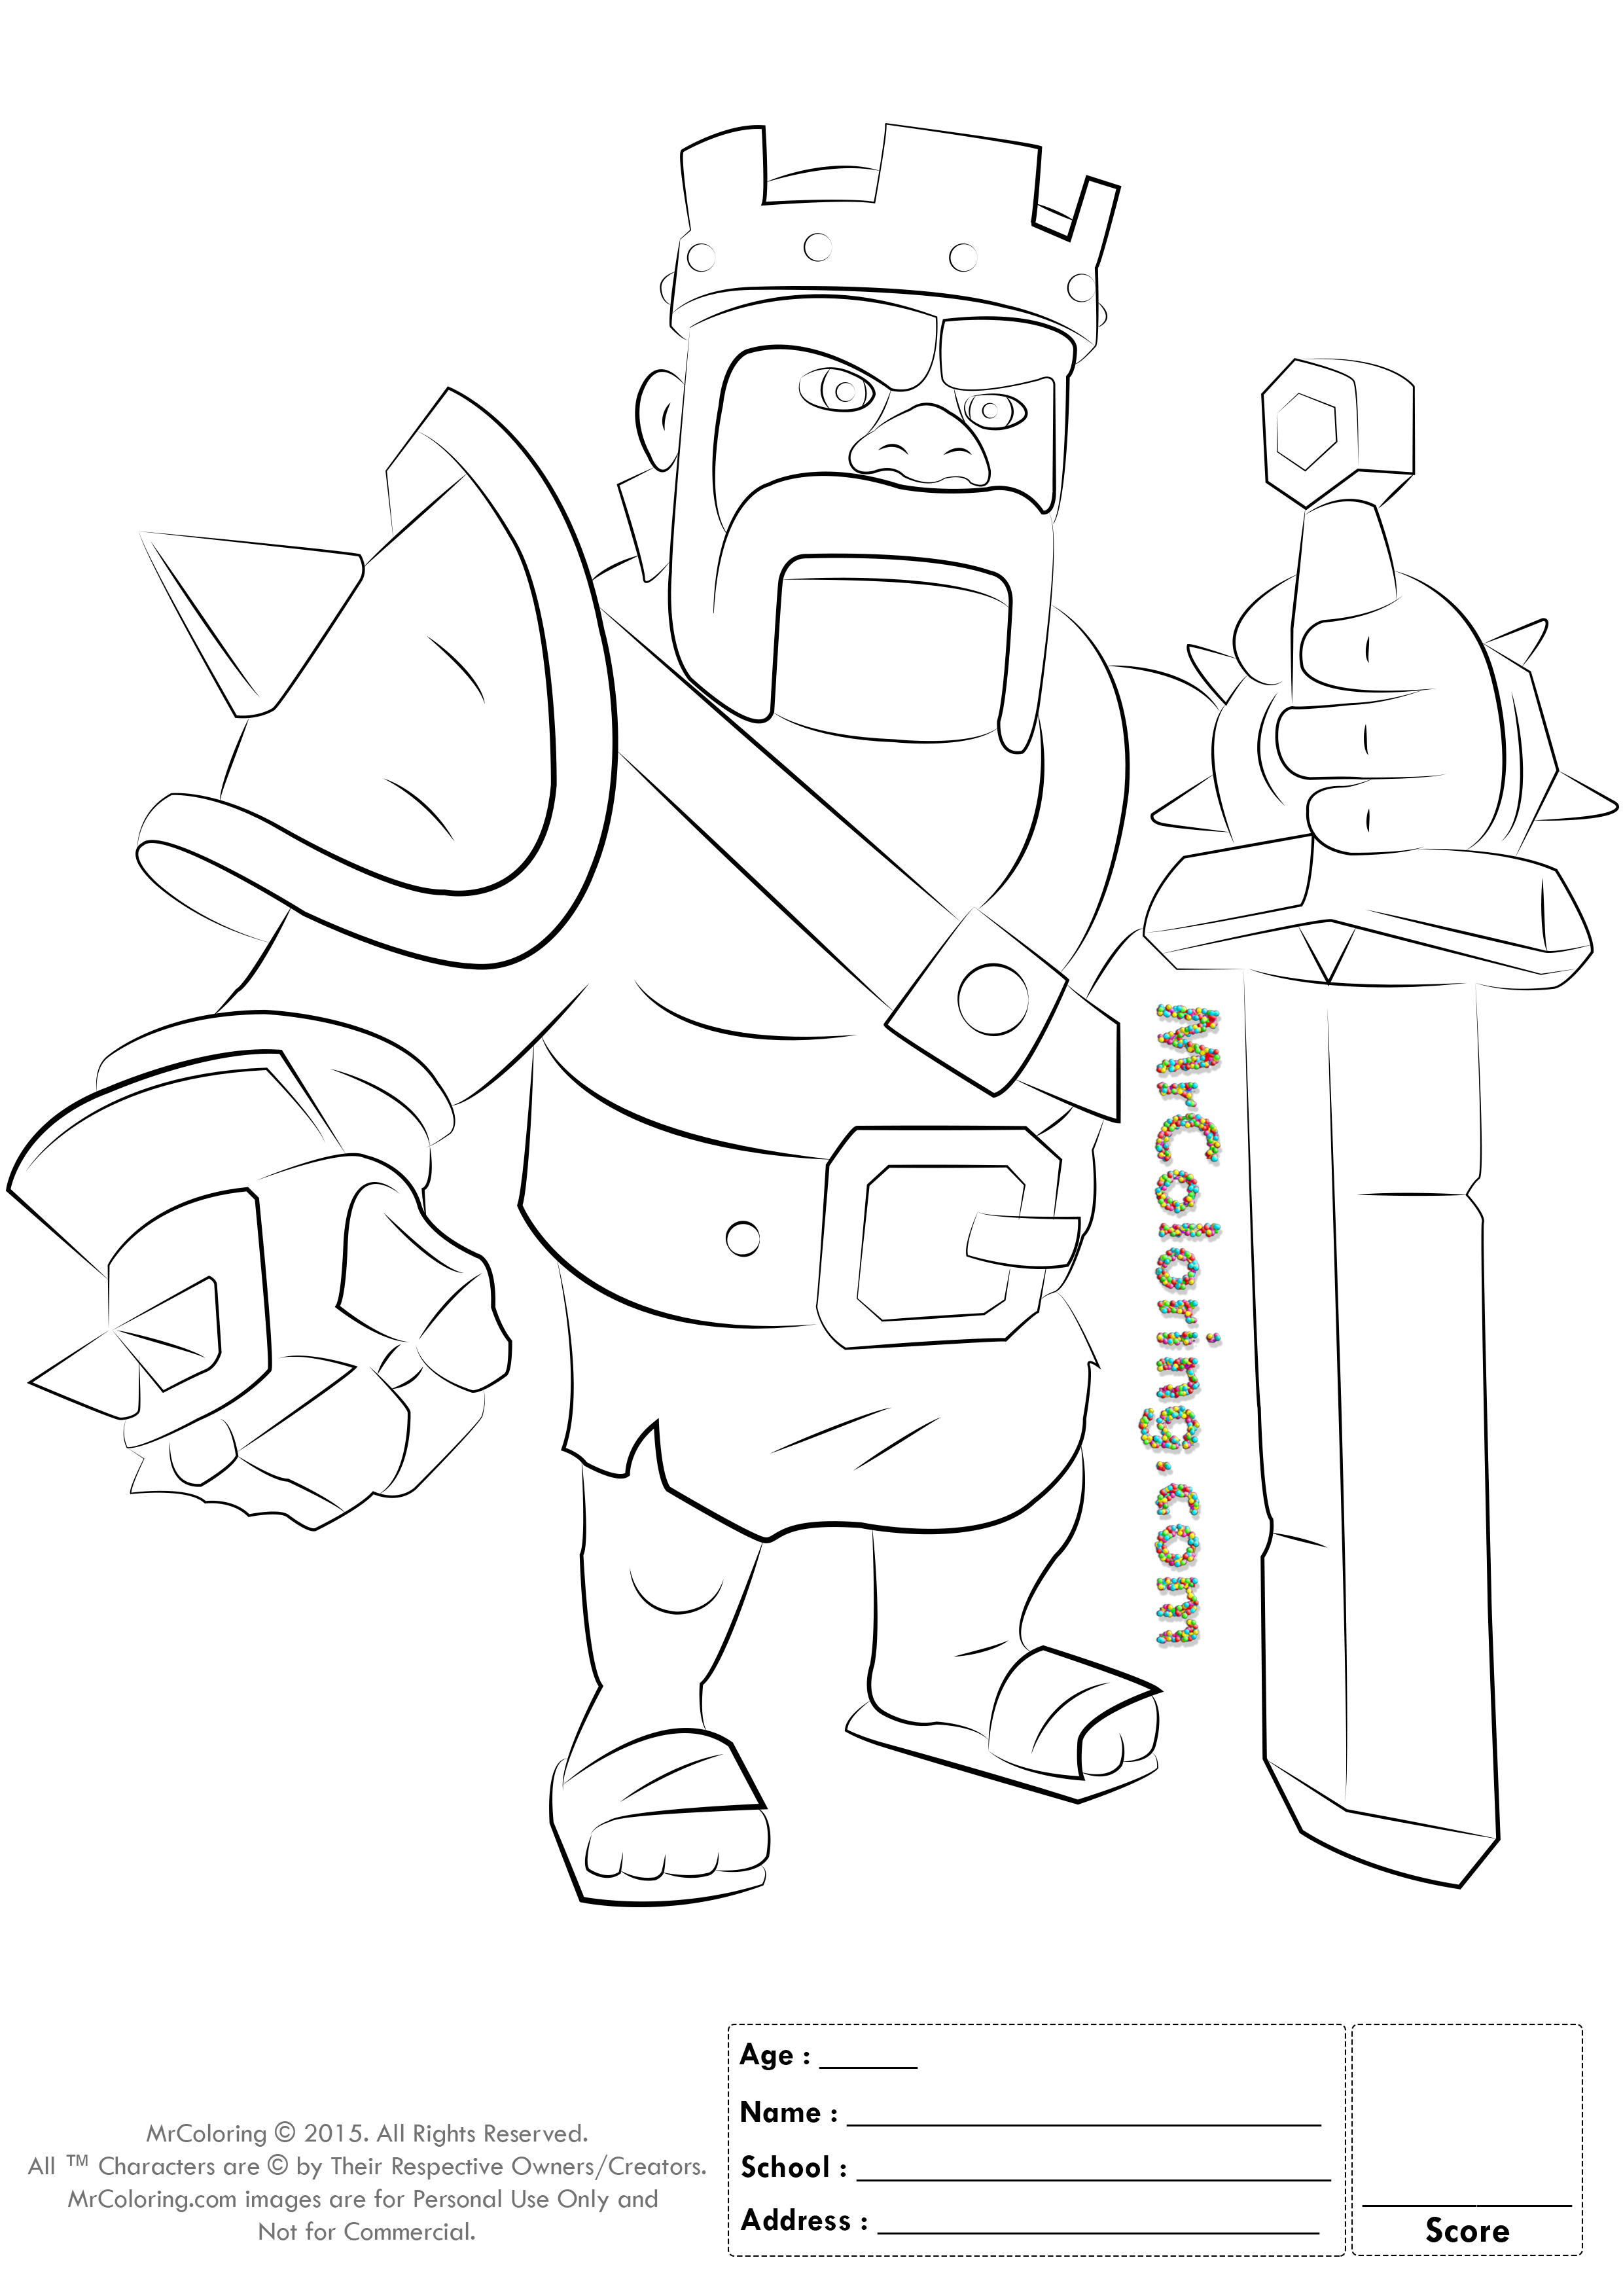 Free Printable Clash Of Clans Barbarian King Coloring Pages 1